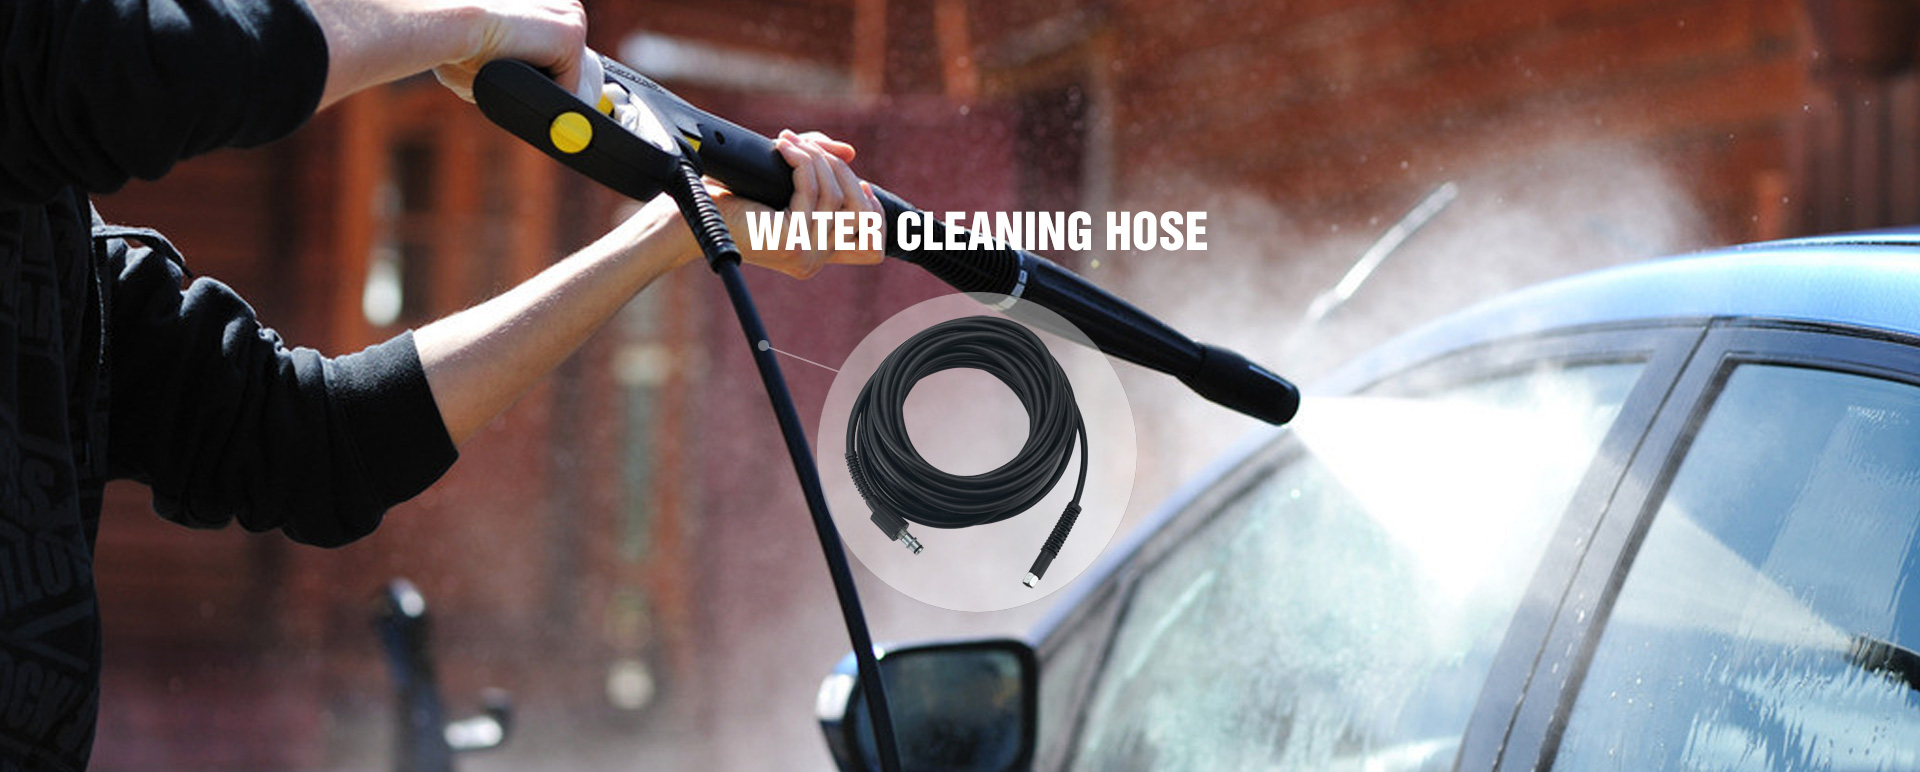 Water cleaning hose